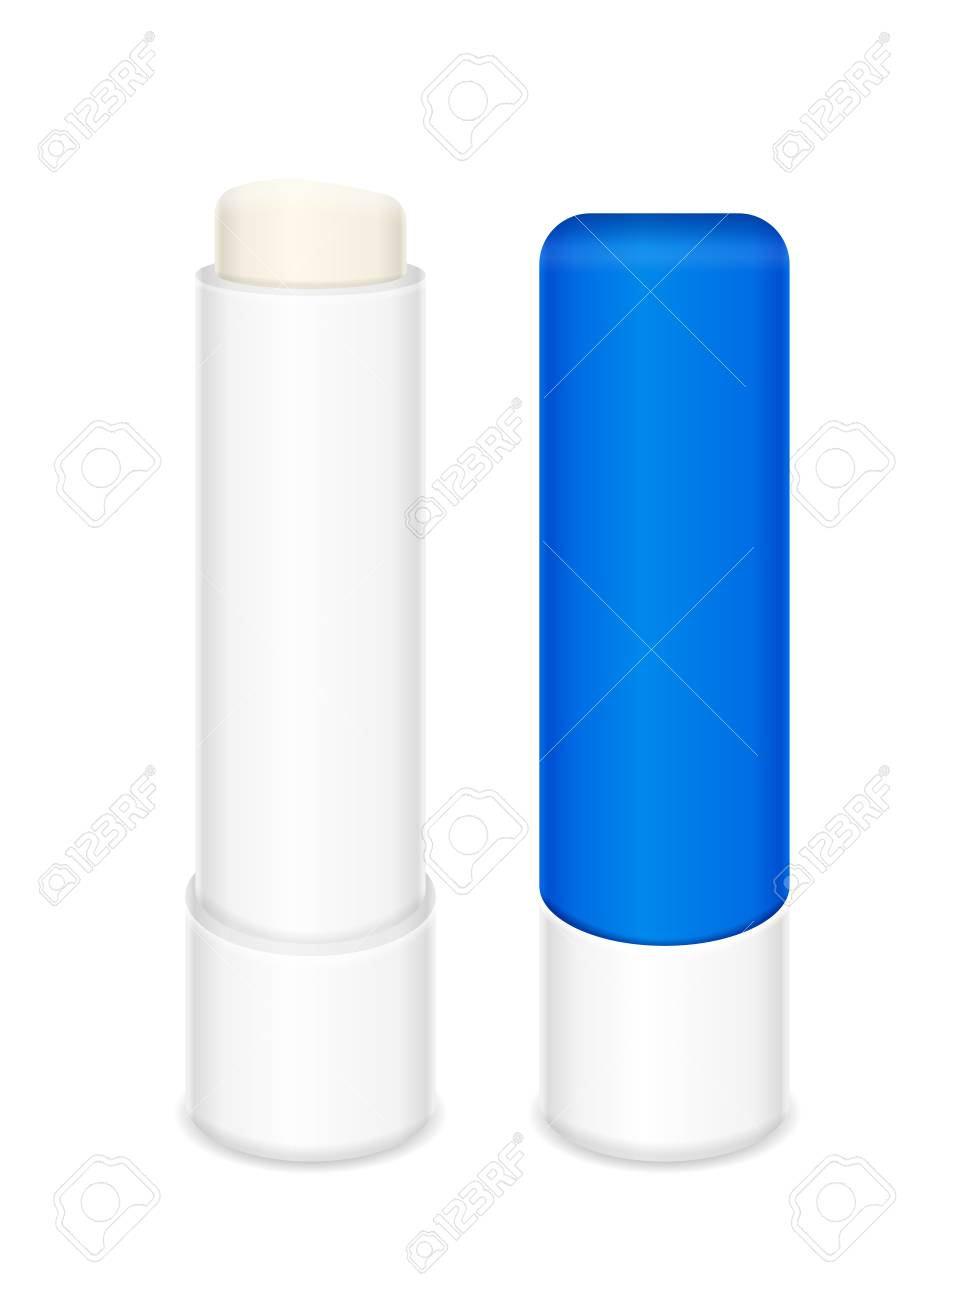 Lip balm stick on a white background. Vector illustration..